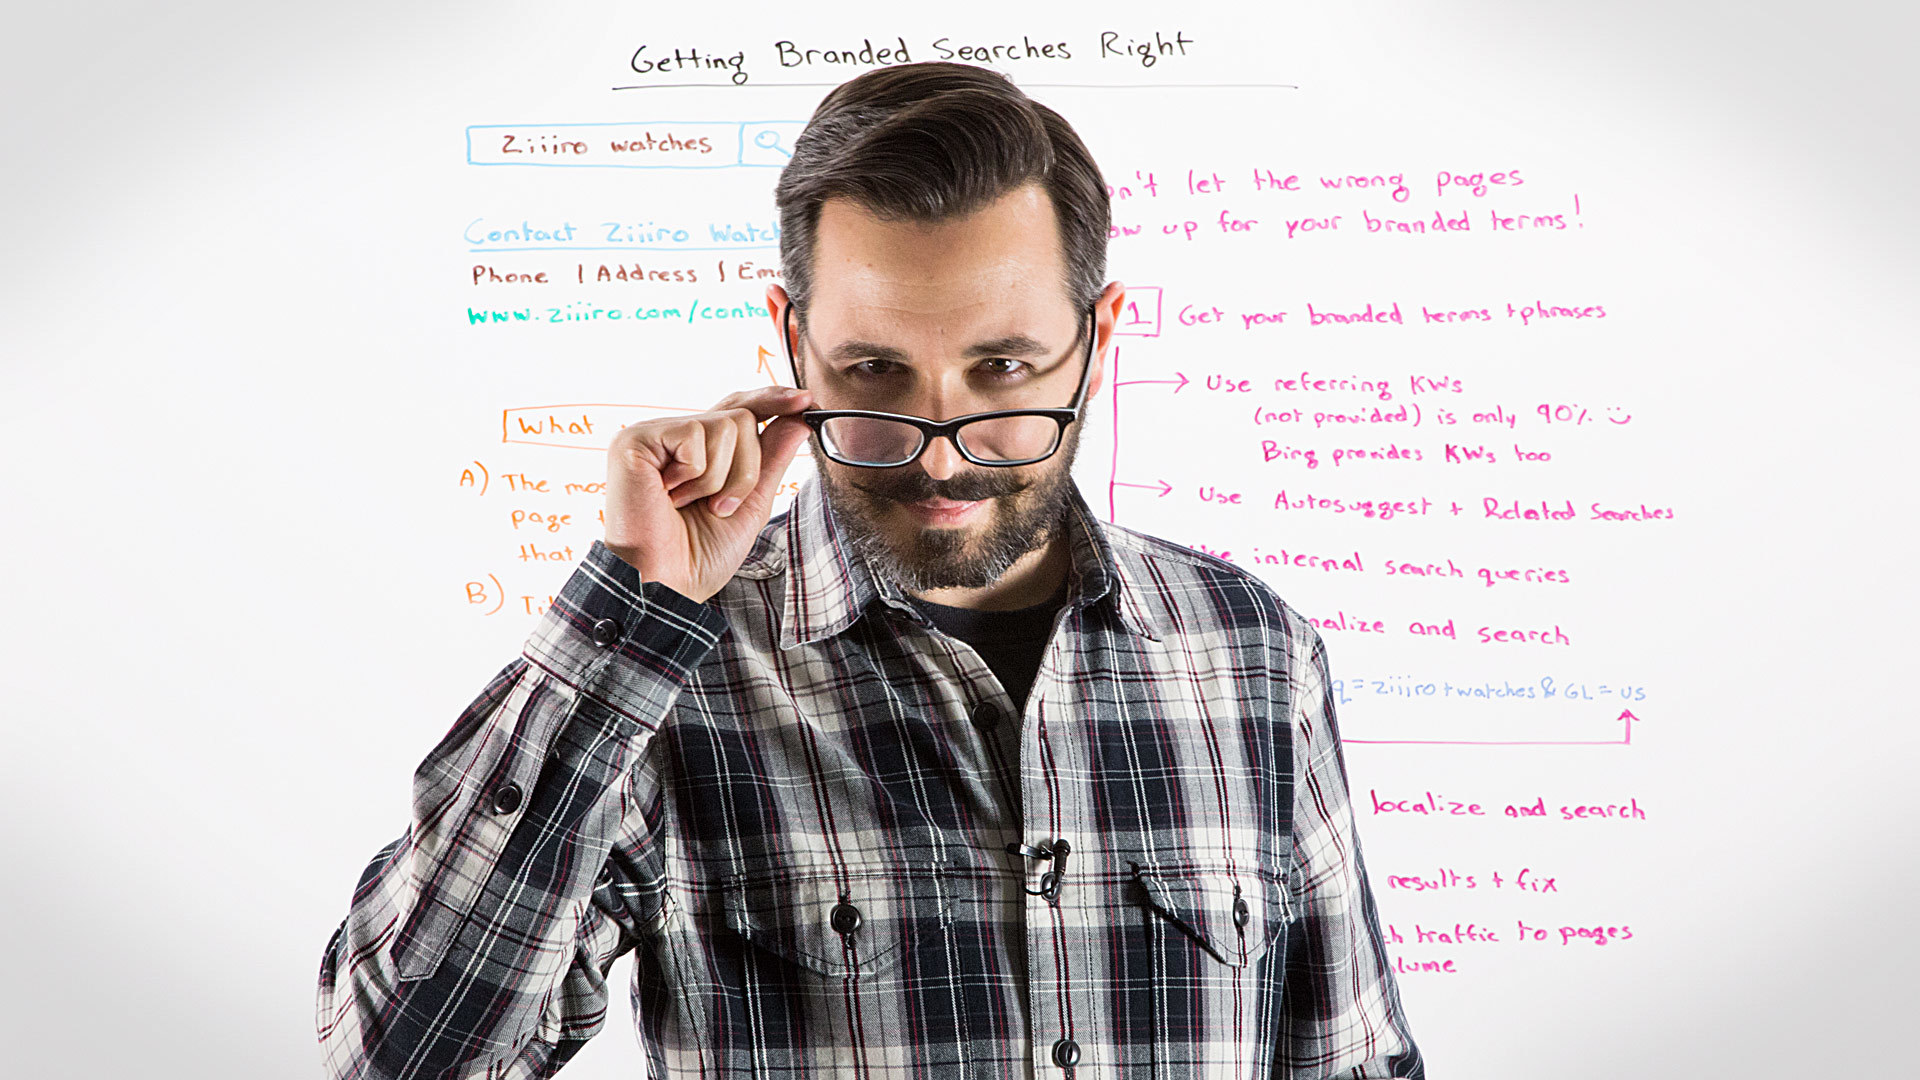 Like Moz's iconic Whiteboard Friday